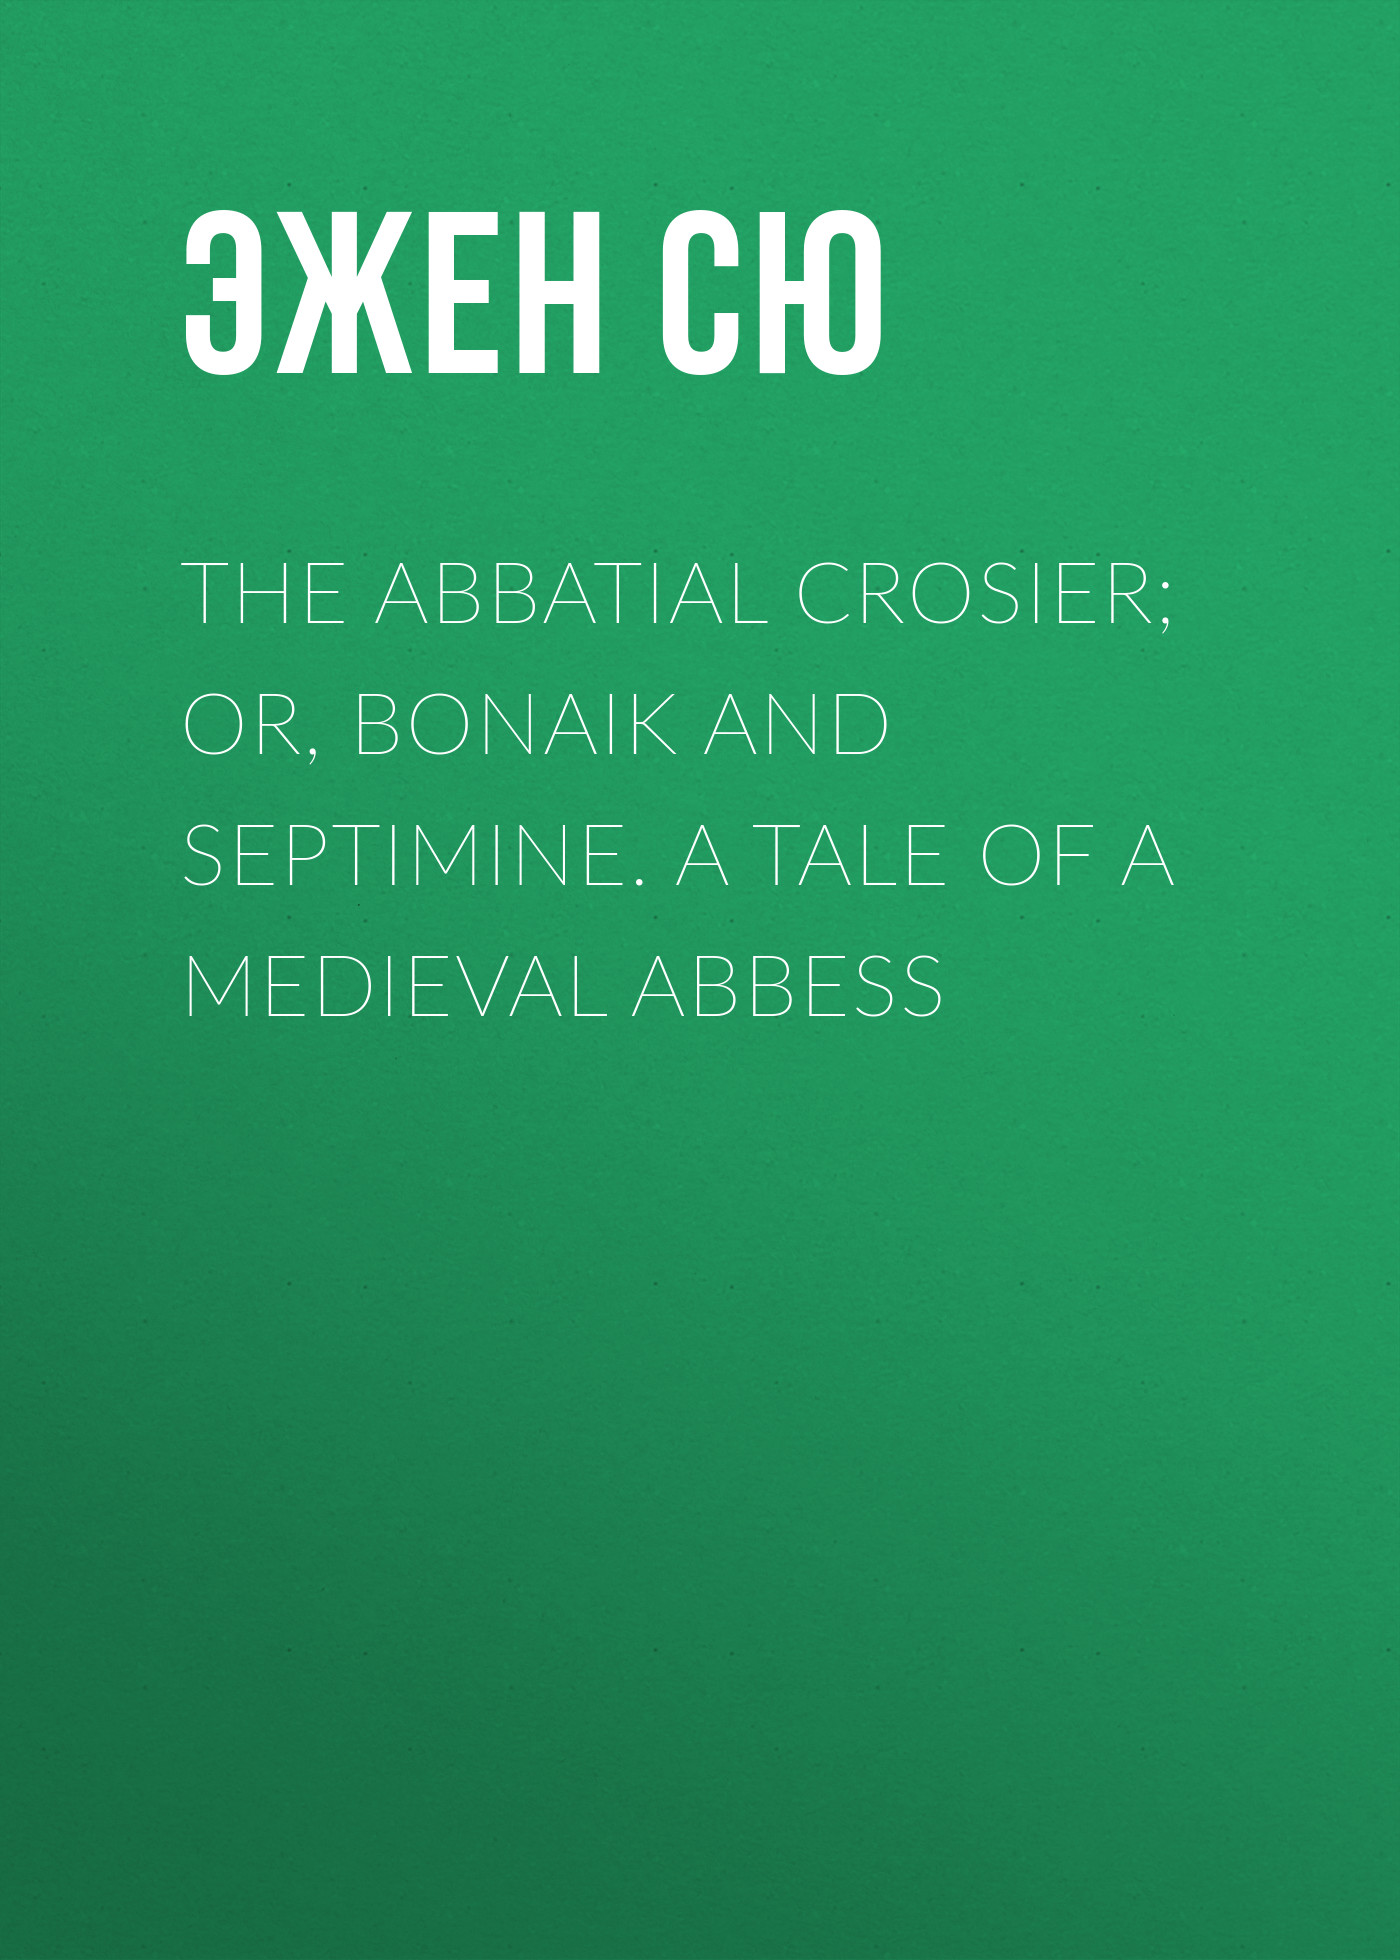 Фото - Эжен Сю The Abbatial Crosier; or, Bonaik and Septimine. A Tale of a Medieval Abbess эжен сю the gold sickle or hena the virgin of the isle of sen a tale of druid gaul